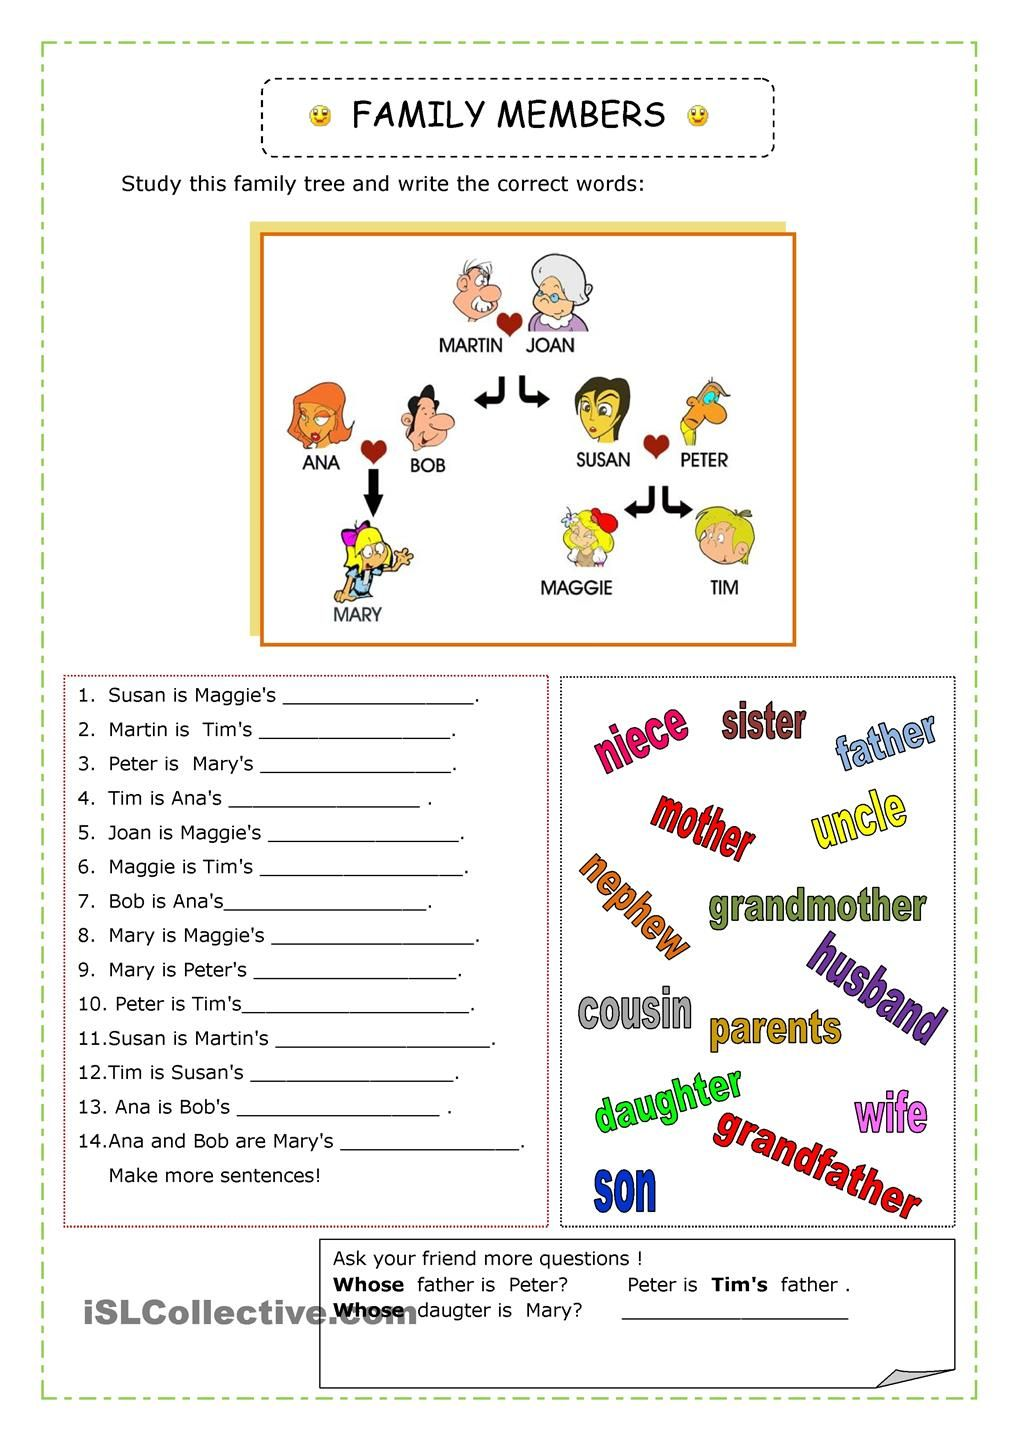 Worksheet Free Esl Worksheets For Beginners free esl pdf worksheets for beginners delwfg com beginner com